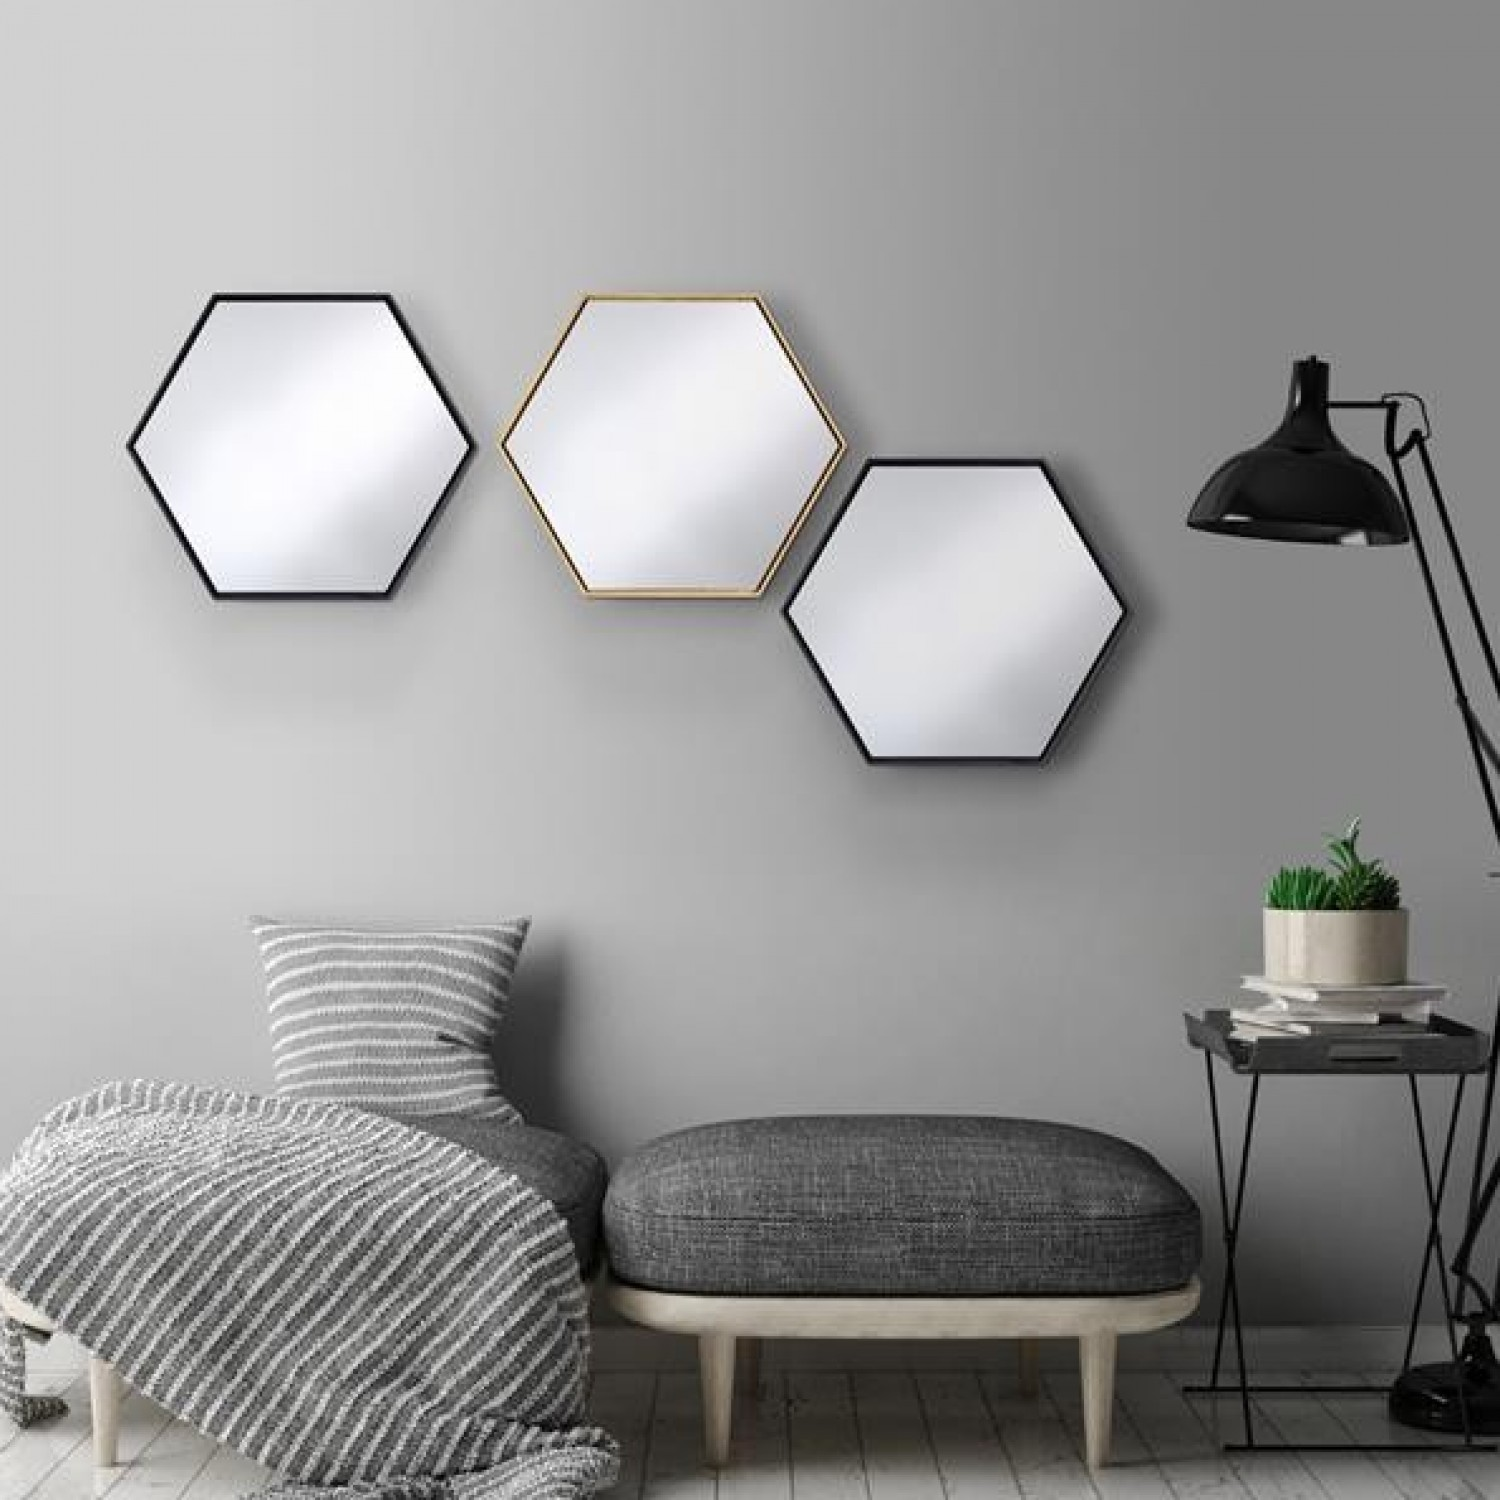 Mirrors - Use mirrors to bounce light around your room. One clever way to do this is place a mirror adjacent to a window in order to bounce natural light around the room. This won't only bring more natural light to the room but can also make the room feel bigger. The bigger the better.